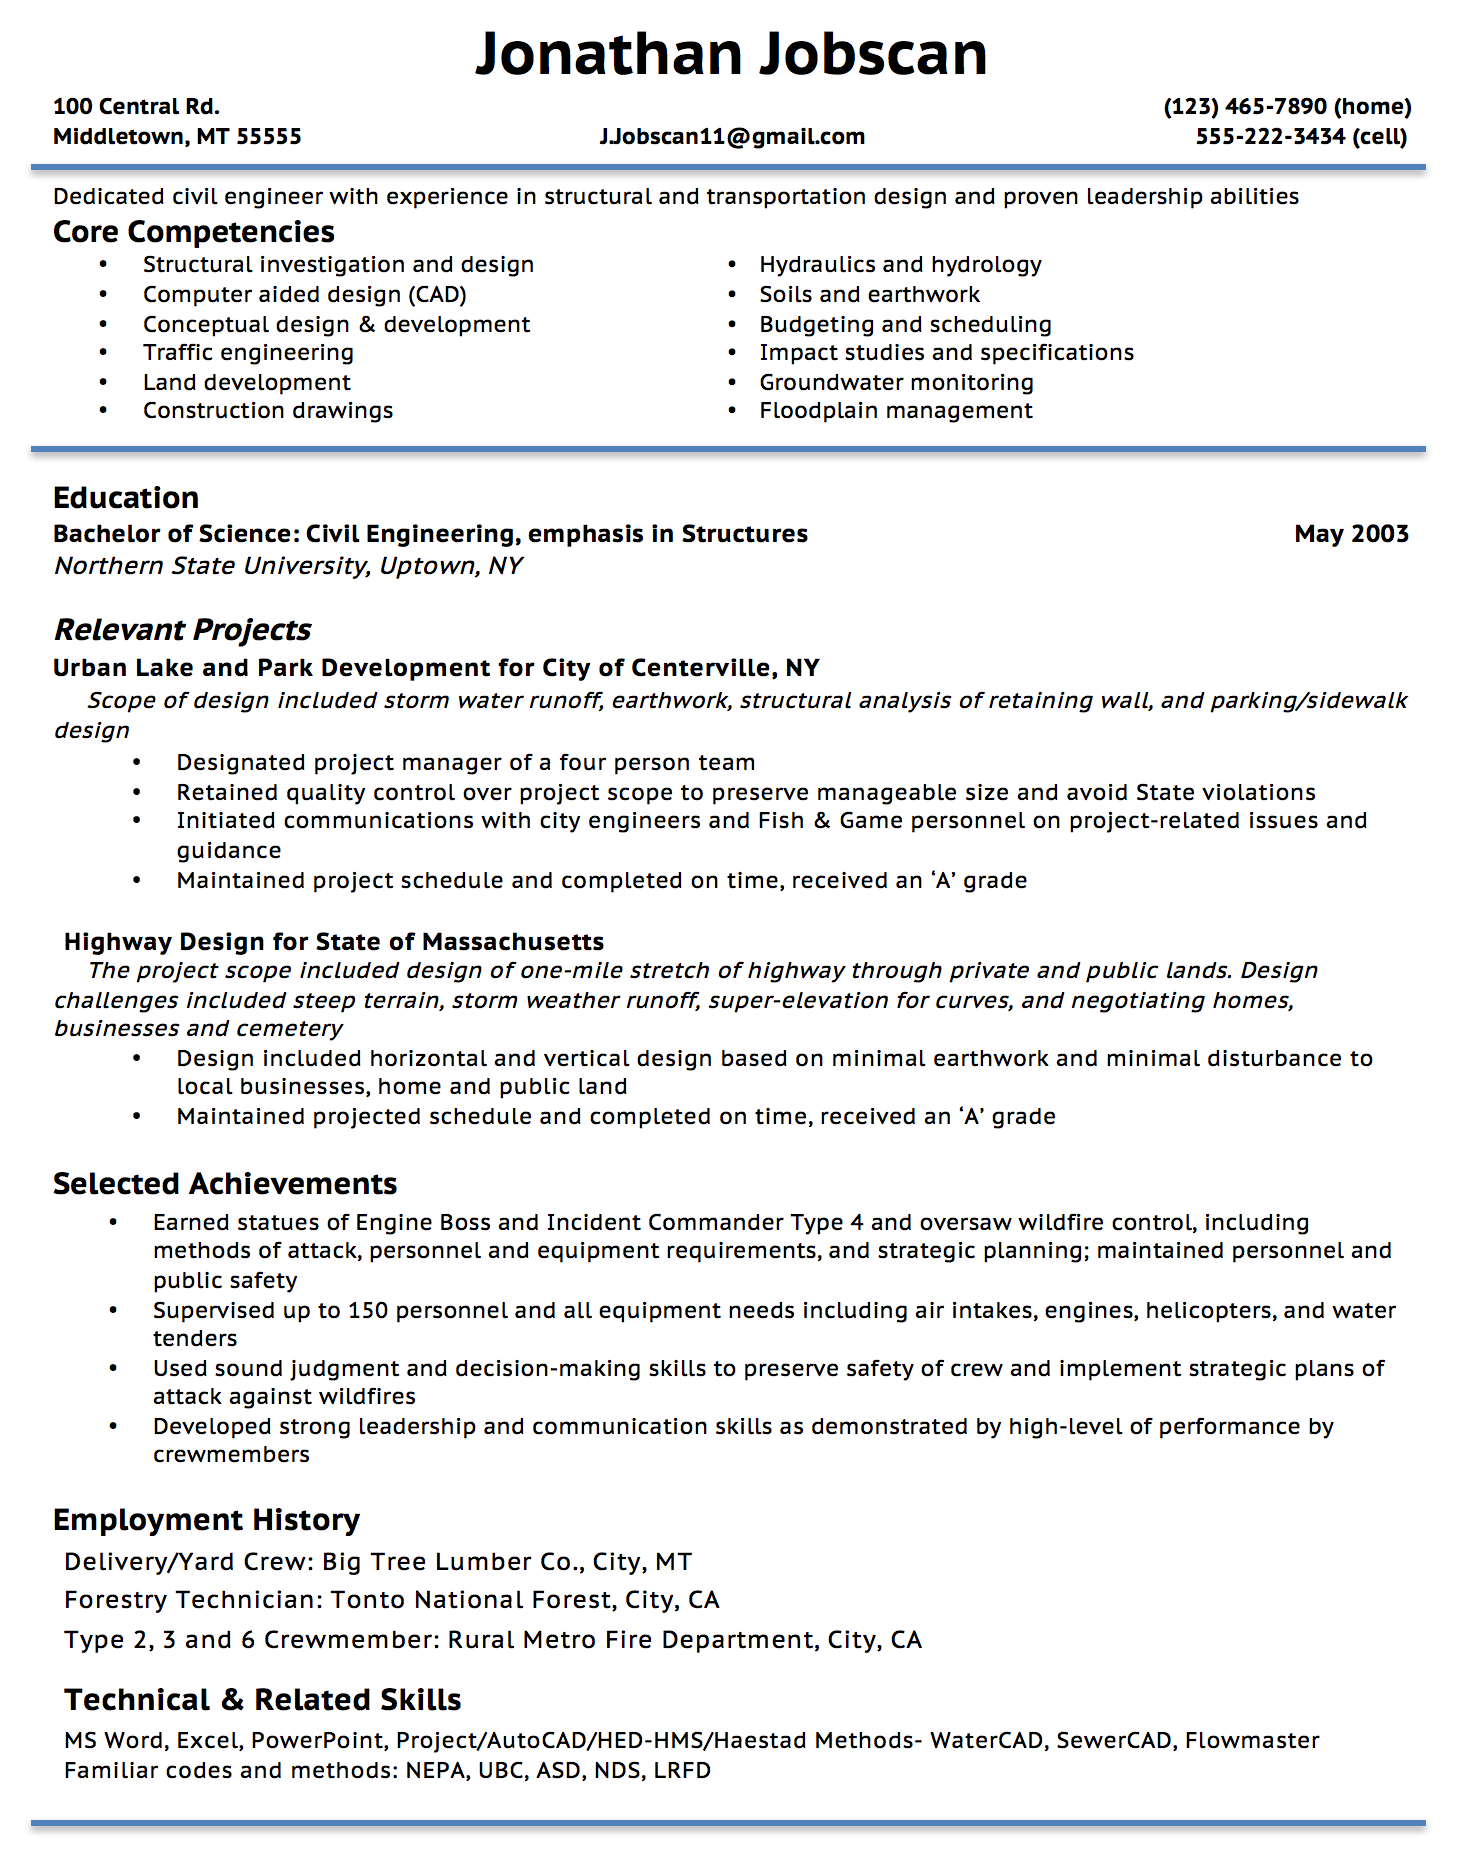 Picnictoimpeachus  Terrific Resume Writing Guide  Jobscan With Magnificent Example Of A Functional Resume Format With Awesome Fraternity Resume Also Resumes For High School Students With No Work Experience In Addition Actors Resume Sample And Real Free Resume Builder As Well As Best Free Resume Additionally Music Industry Resume From Jobscanco With Picnictoimpeachus  Magnificent Resume Writing Guide  Jobscan With Awesome Example Of A Functional Resume Format And Terrific Fraternity Resume Also Resumes For High School Students With No Work Experience In Addition Actors Resume Sample From Jobscanco